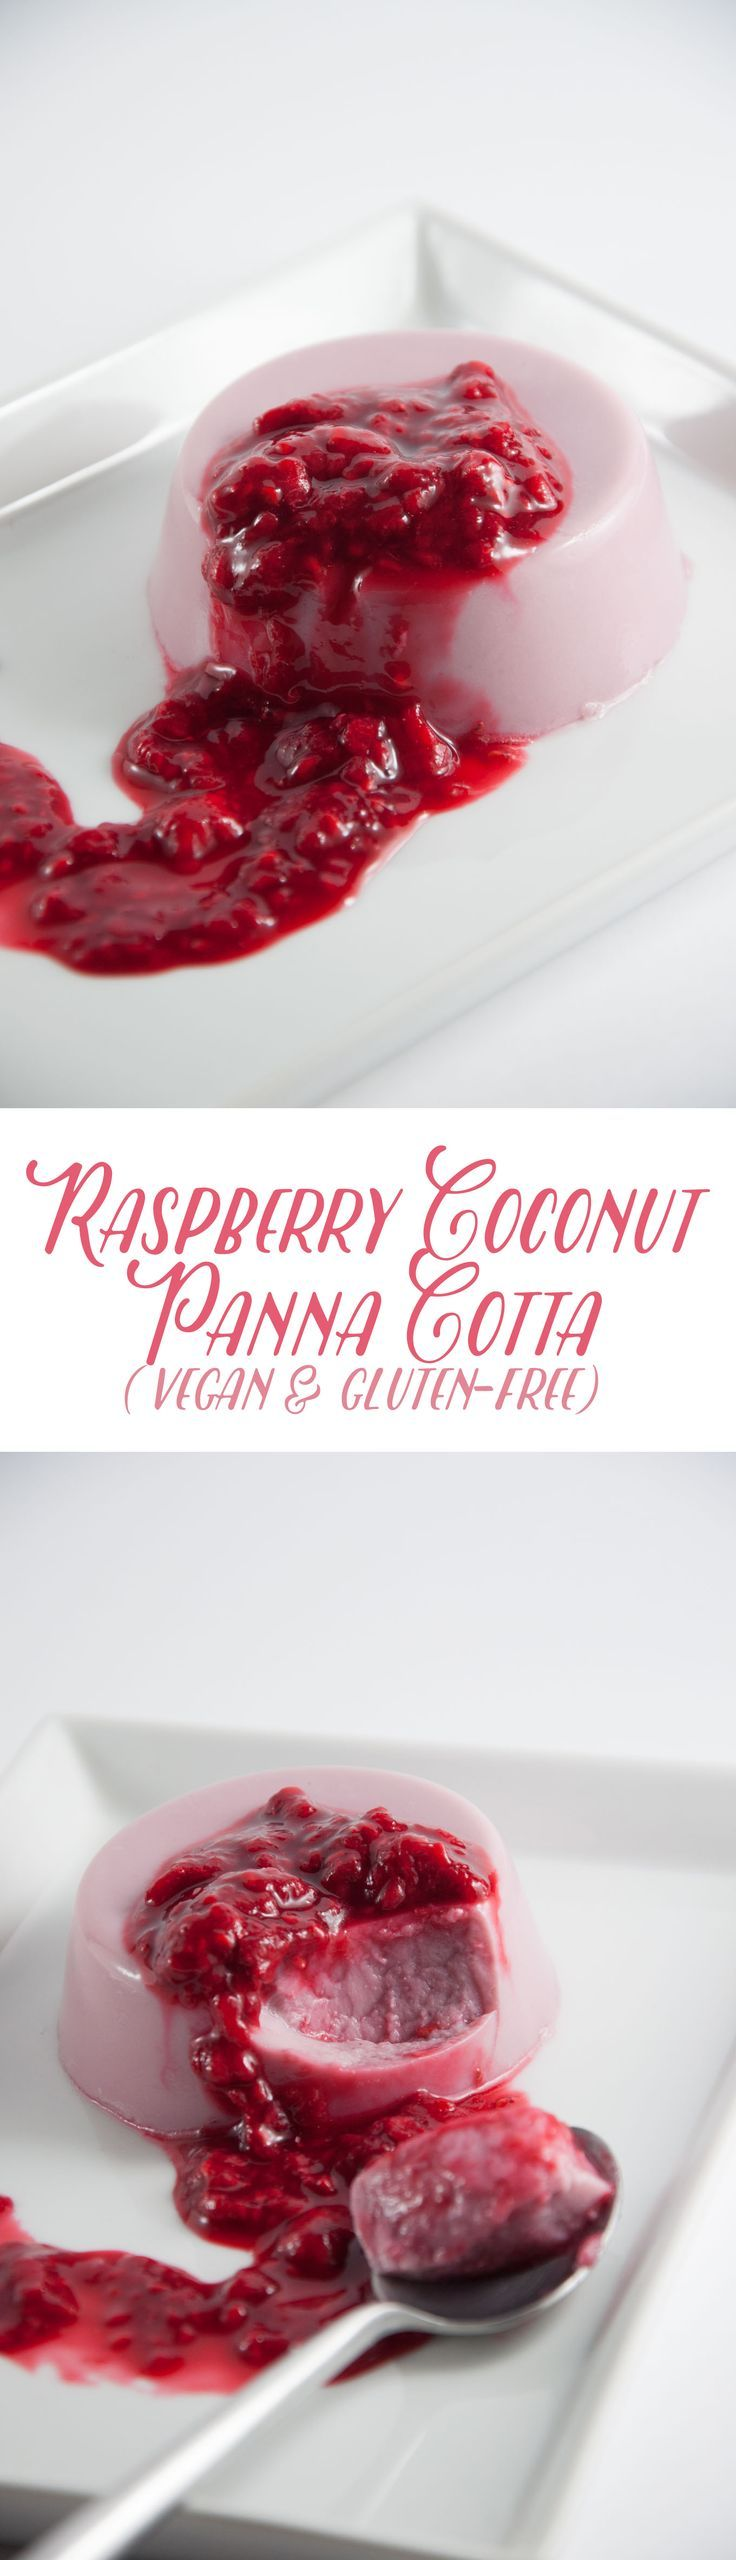 Vegan Raspberry Coconut Panna Cotta | Elephantastic Vegan